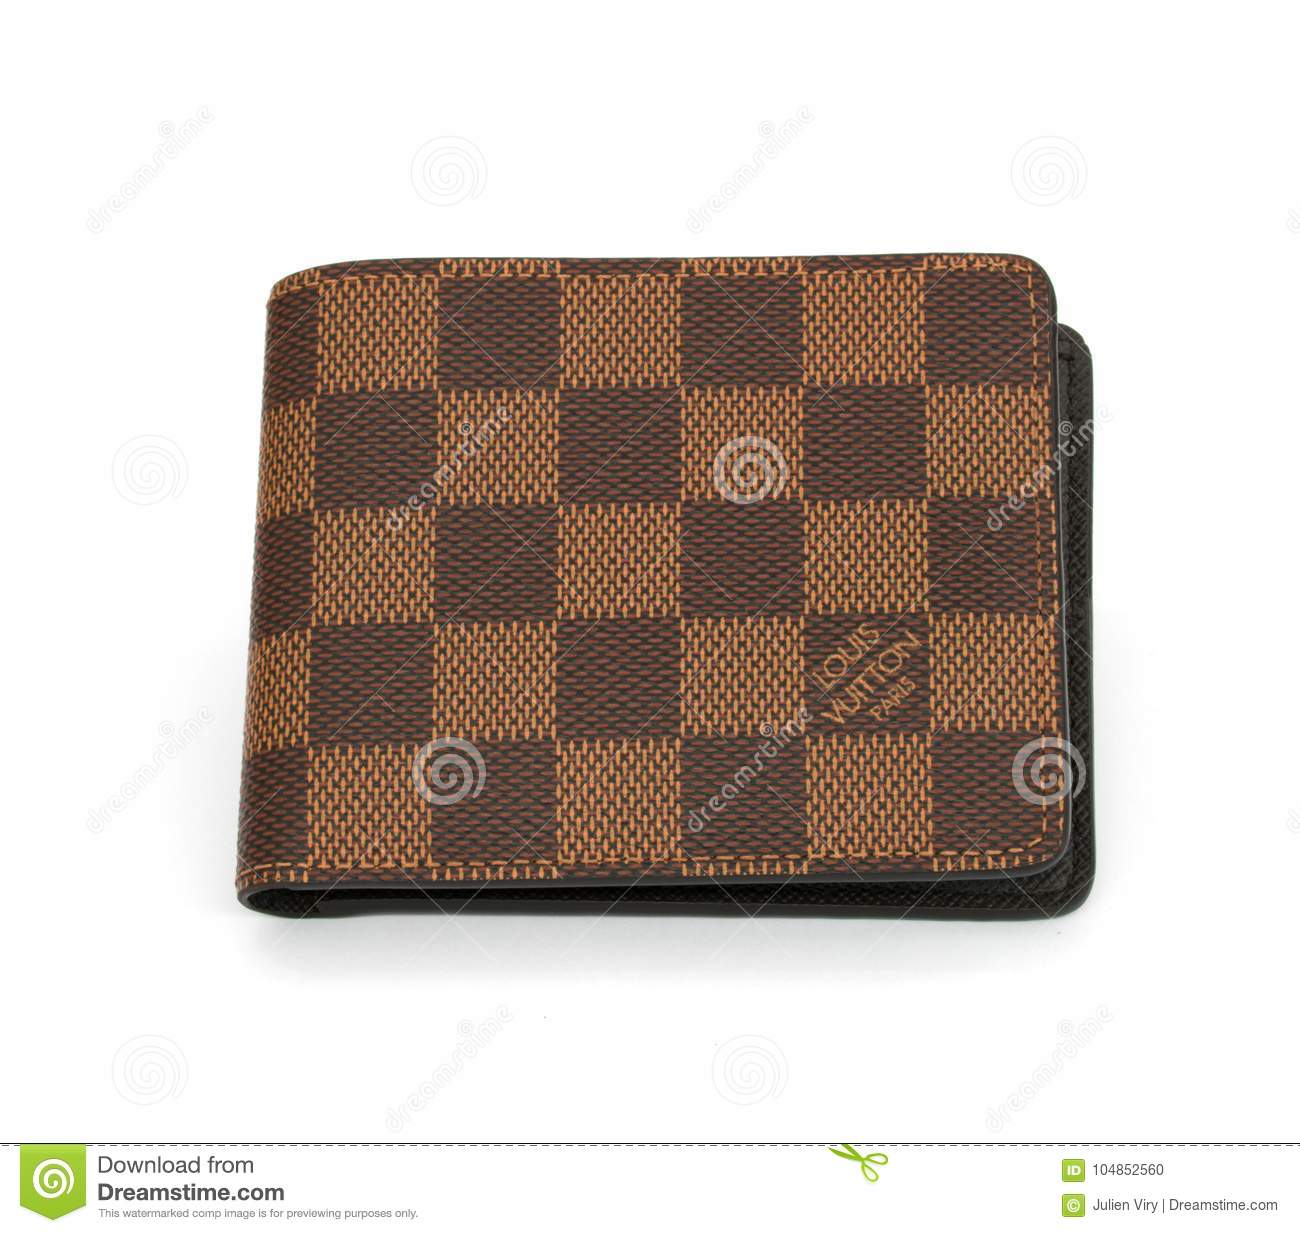 bf610ad0b Louis Vuitton Brown Man Wallet Isolated On White Background ...